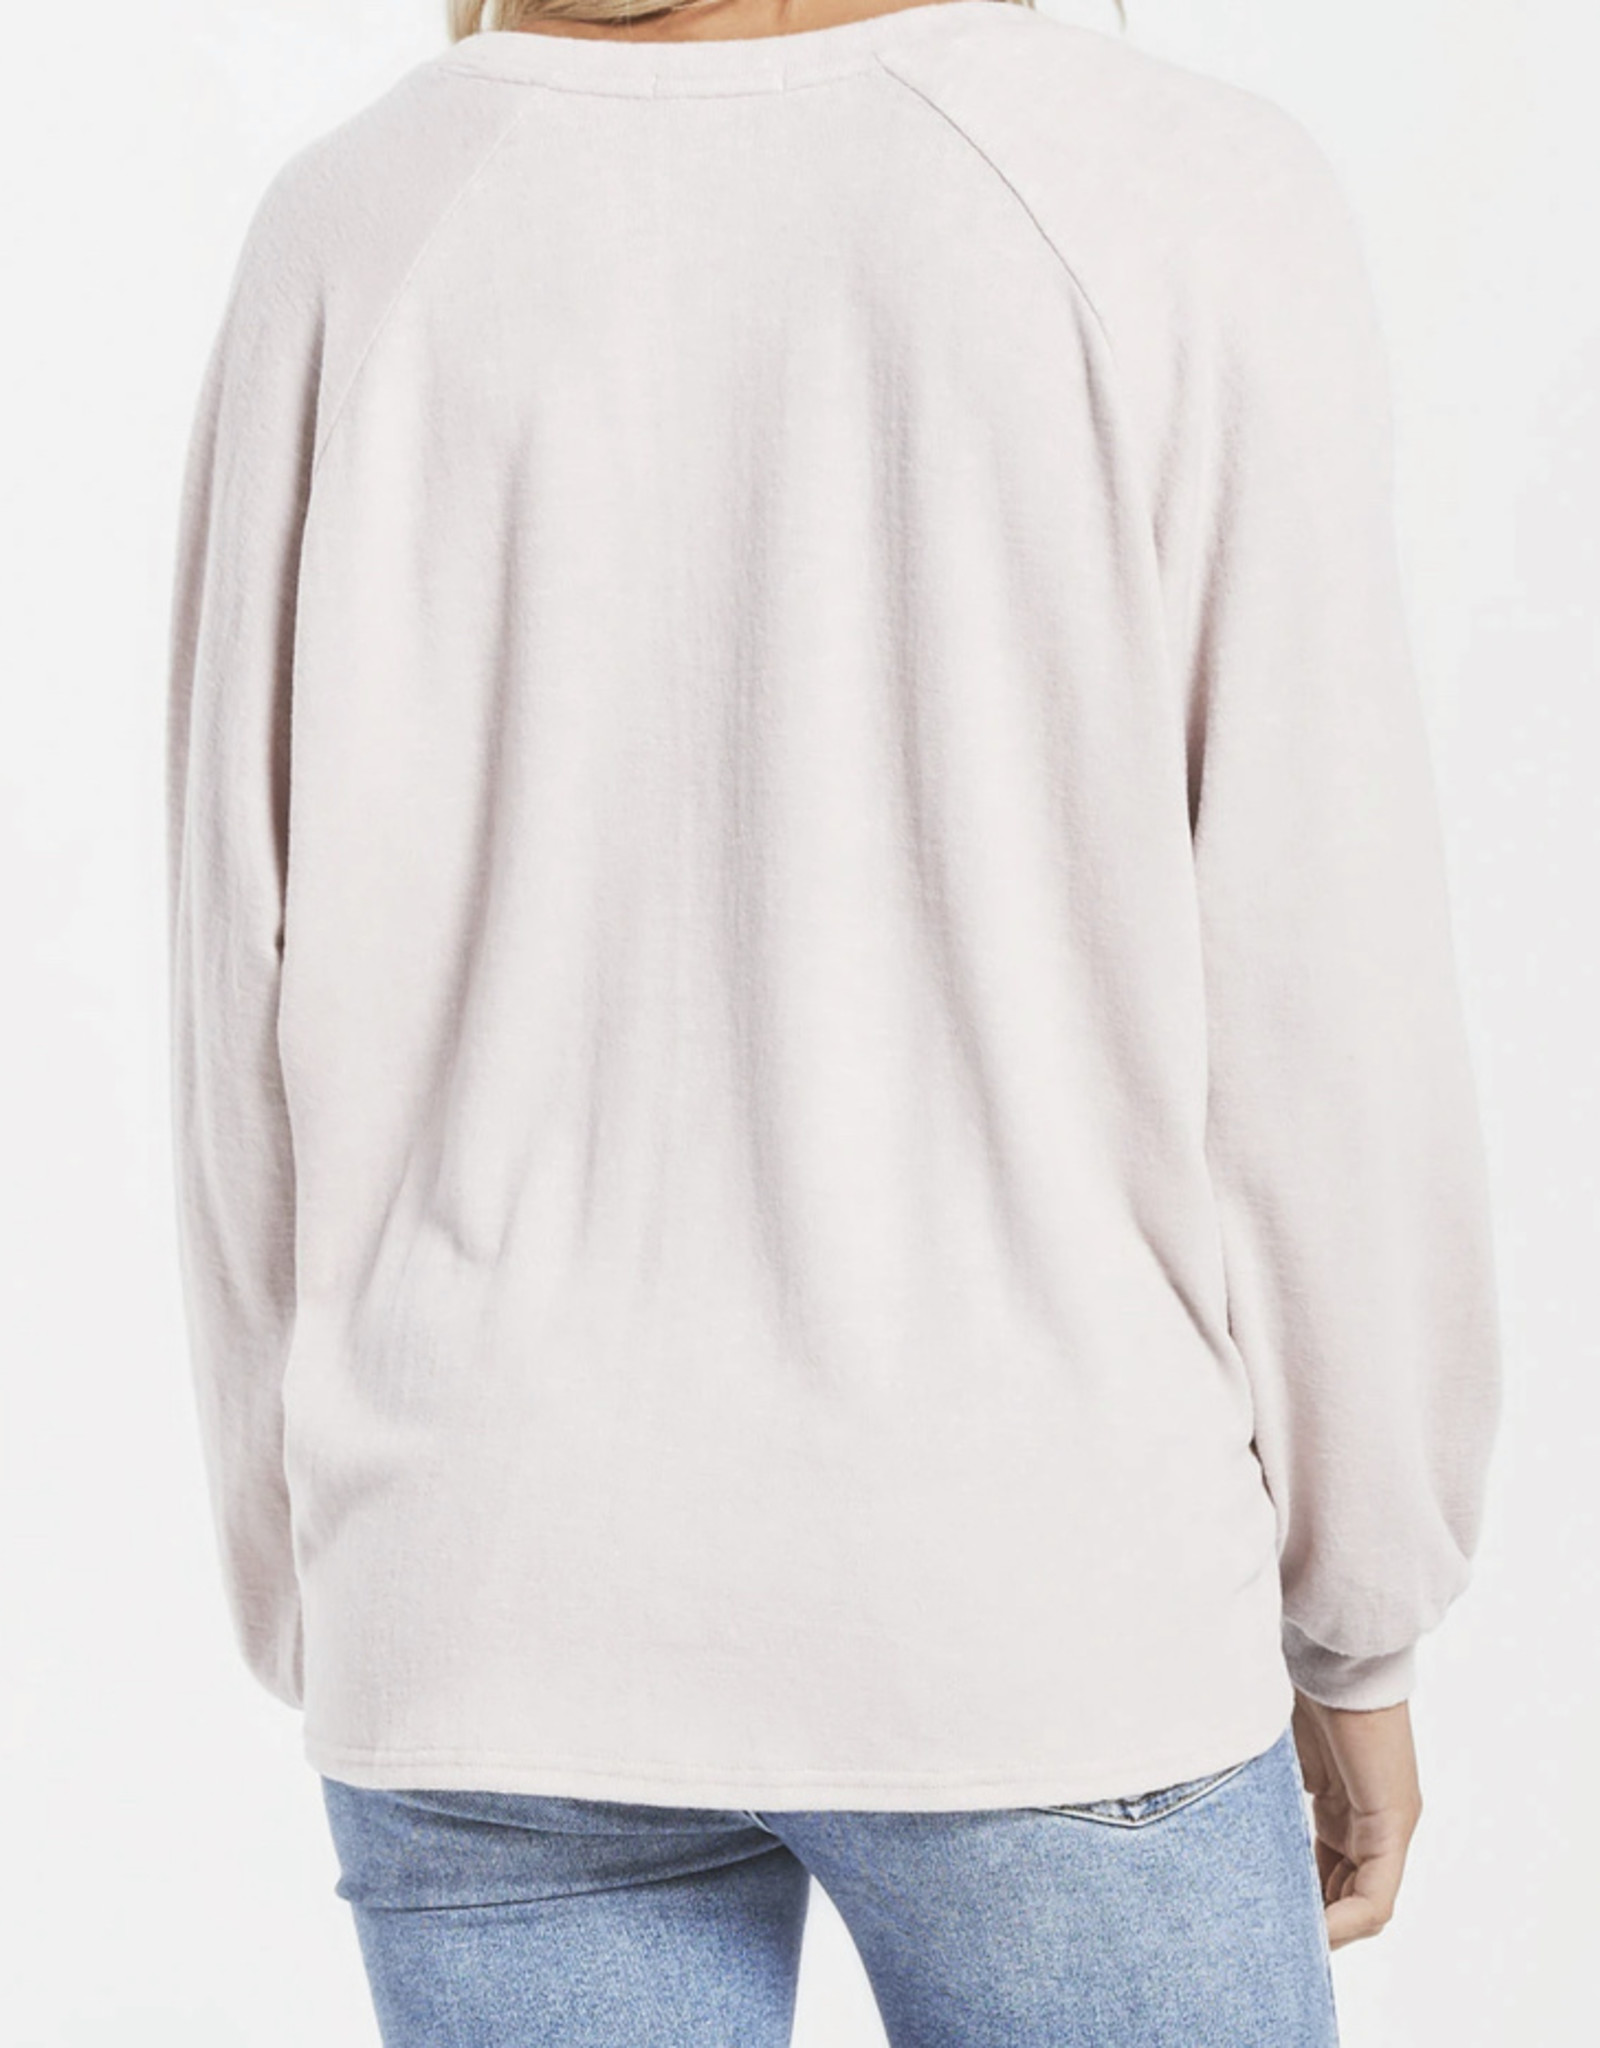 Z Supply Lira Slub Sweater Top